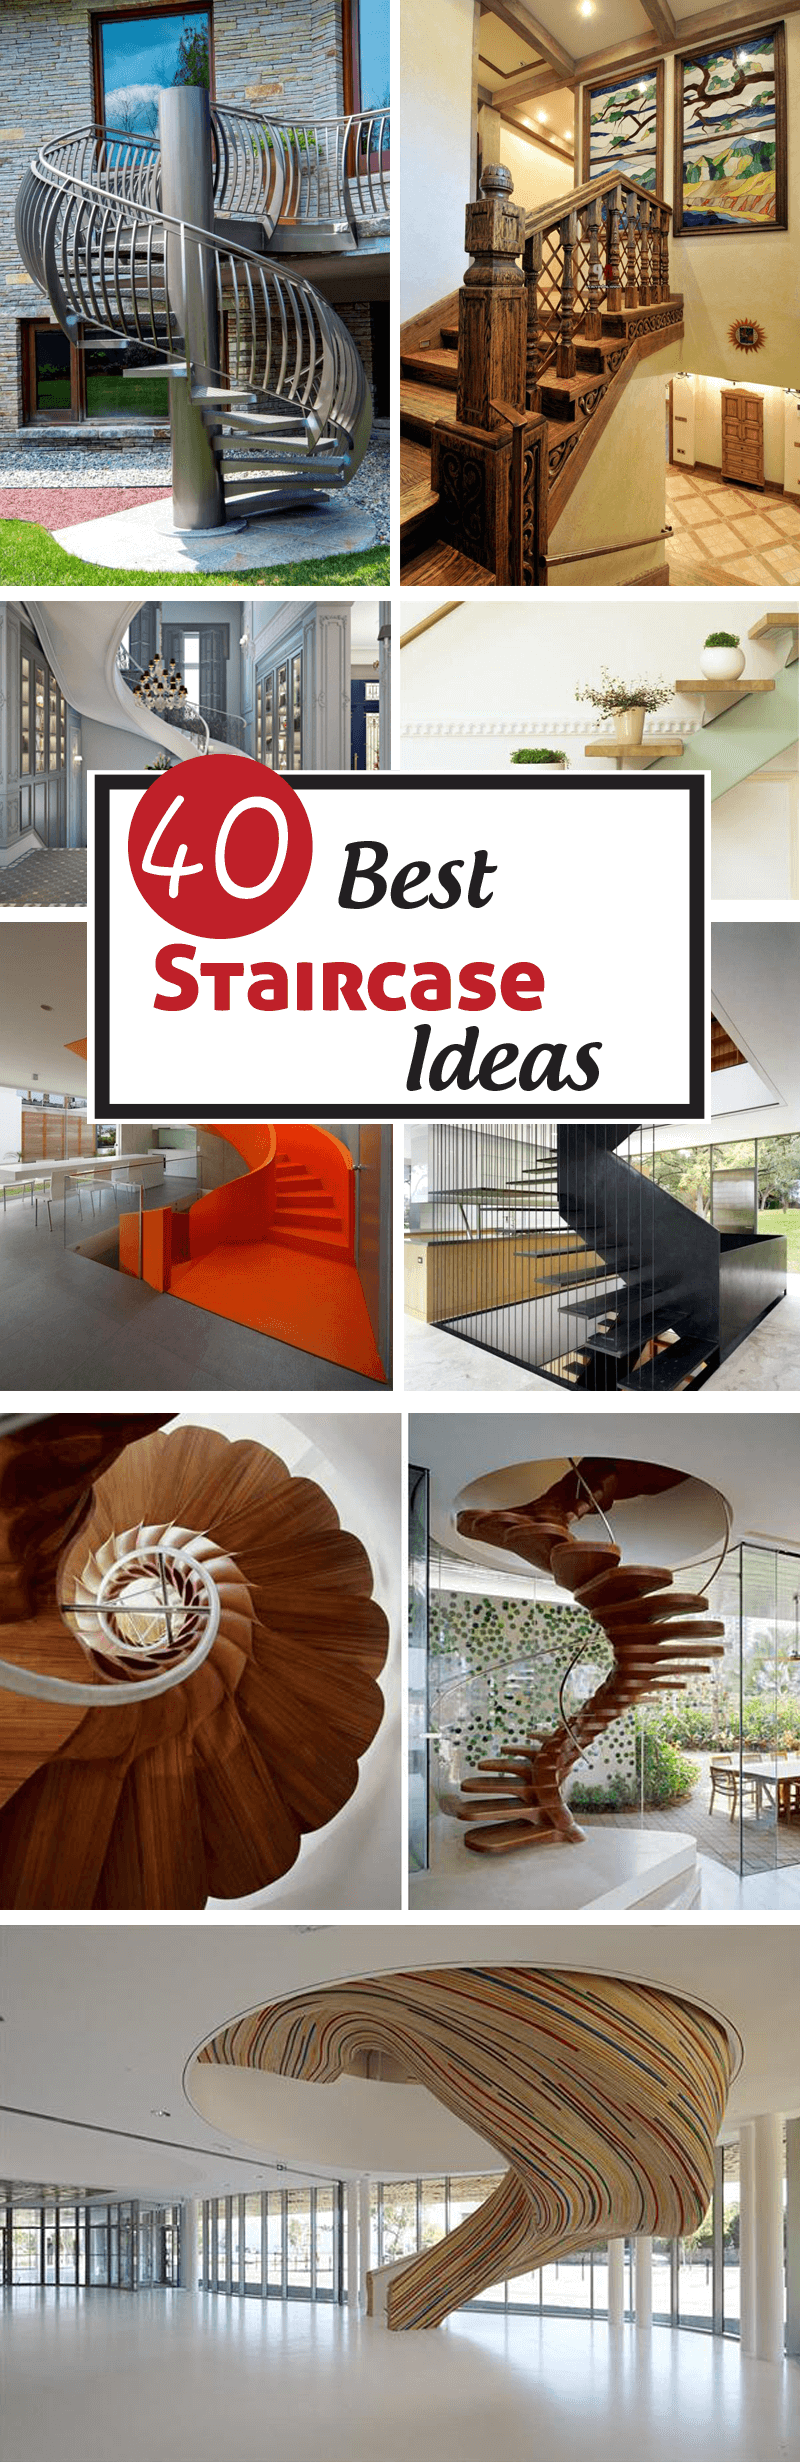 best staircase ideas